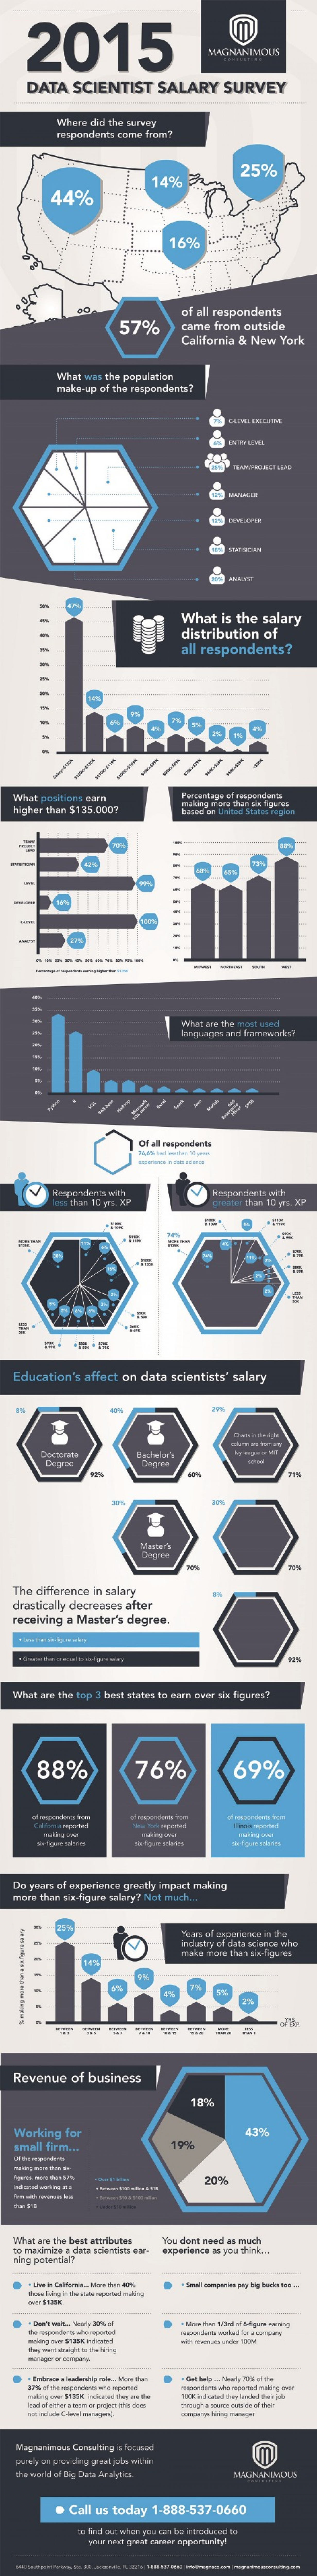 2015 Data Scientist Salary Survey  Infographic